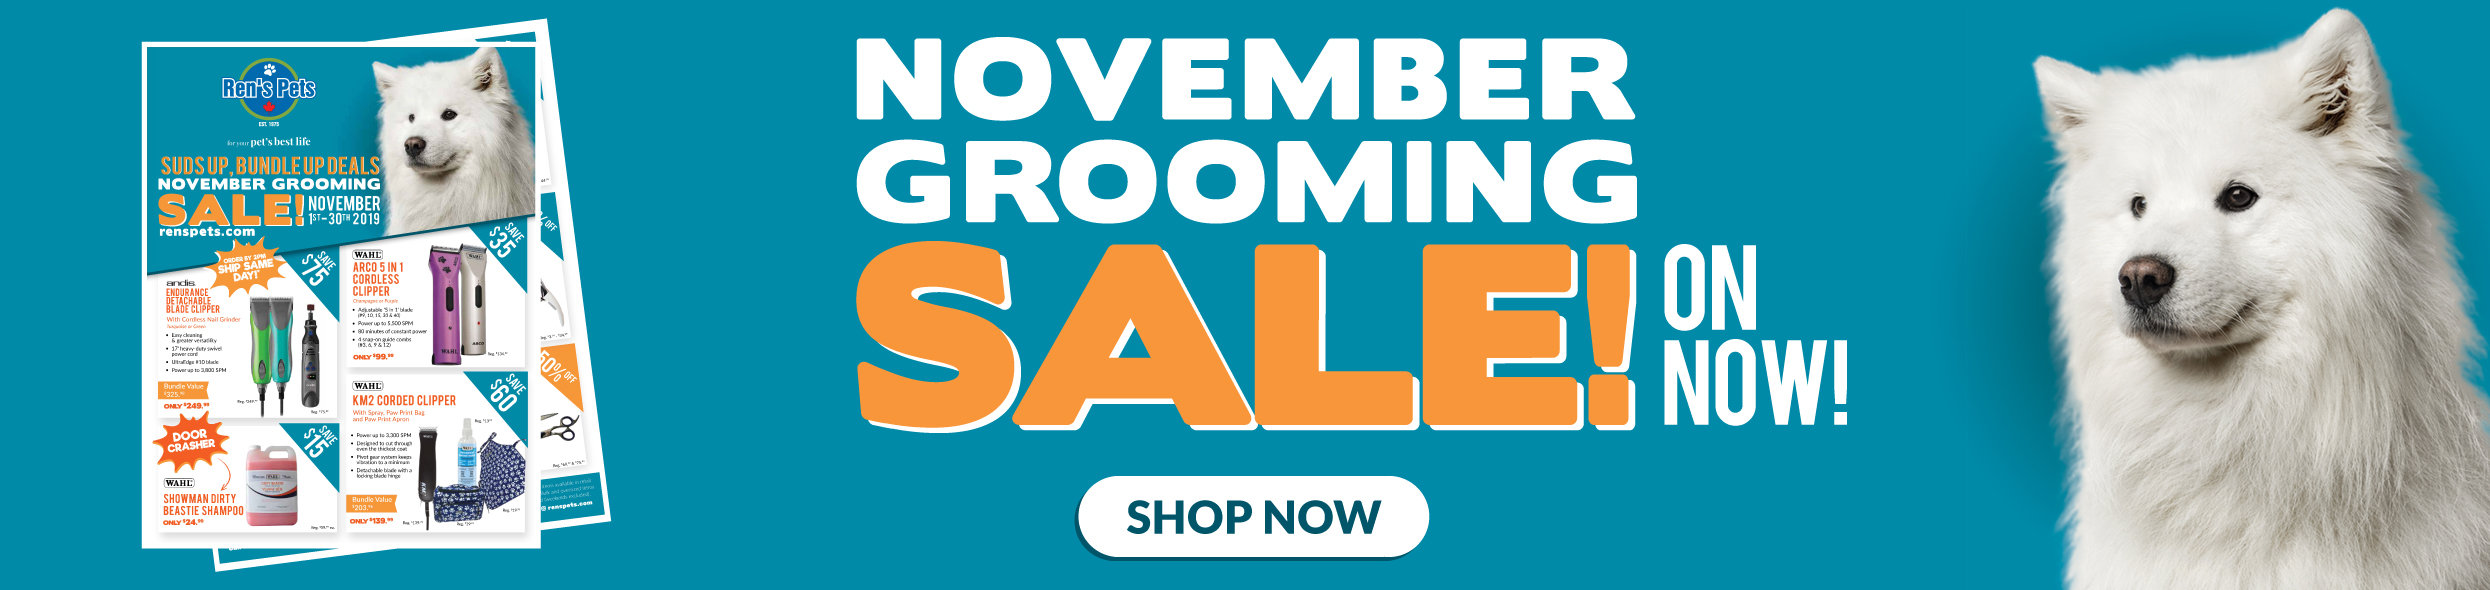 November Grooming Sale